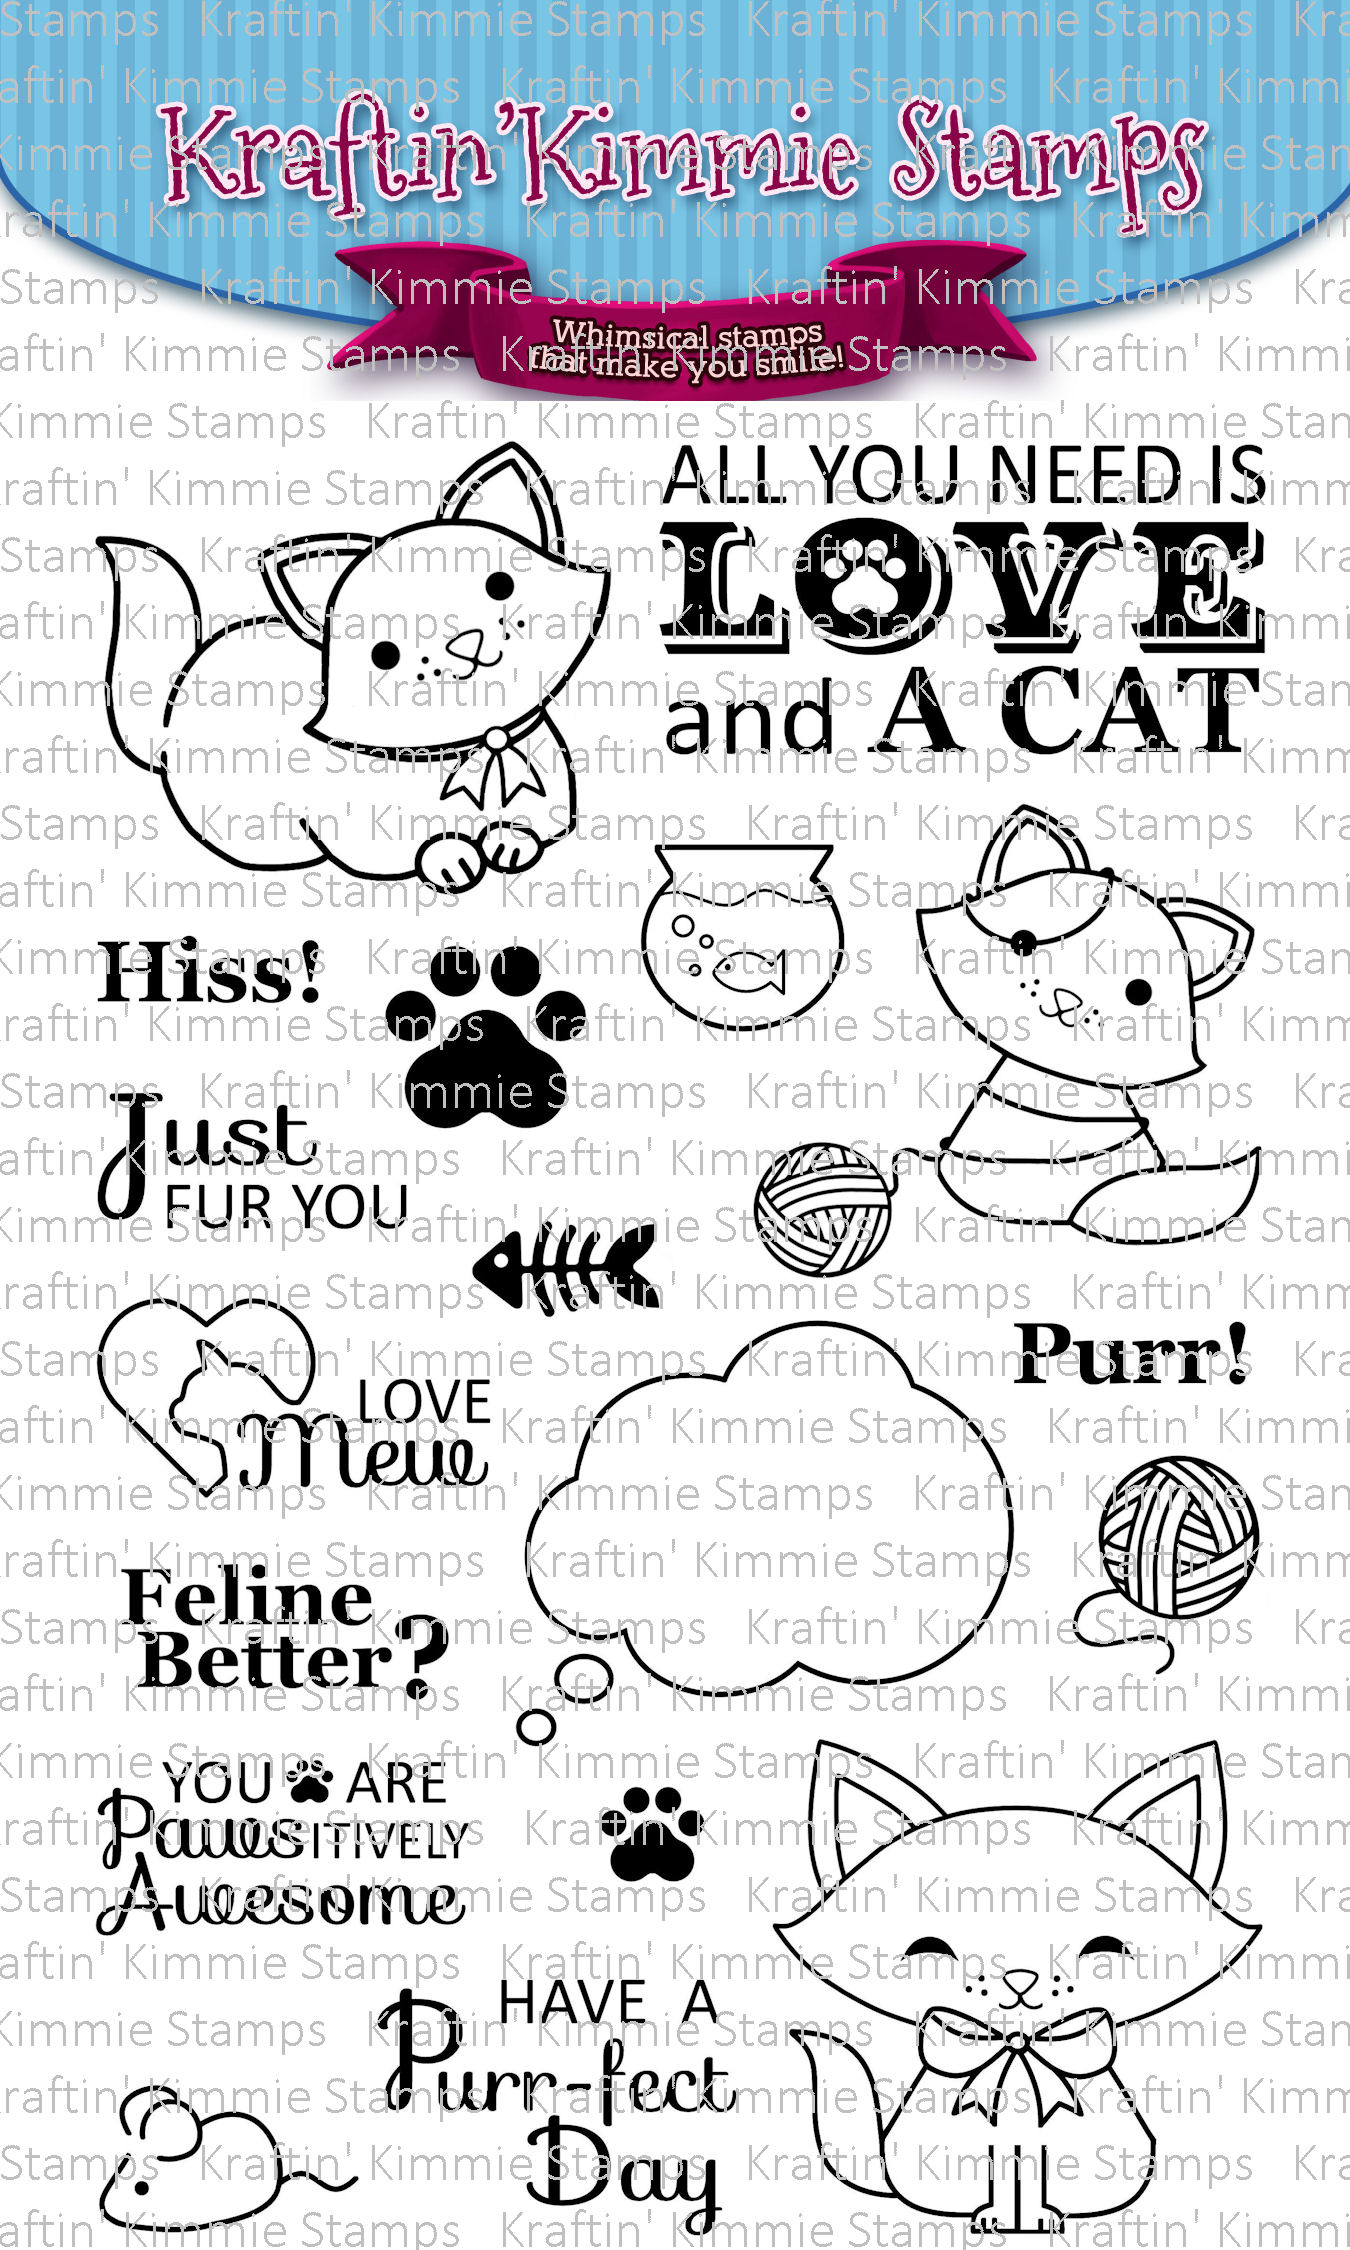 Kraftin' Kimmie Stamps- A Purr-fect Day